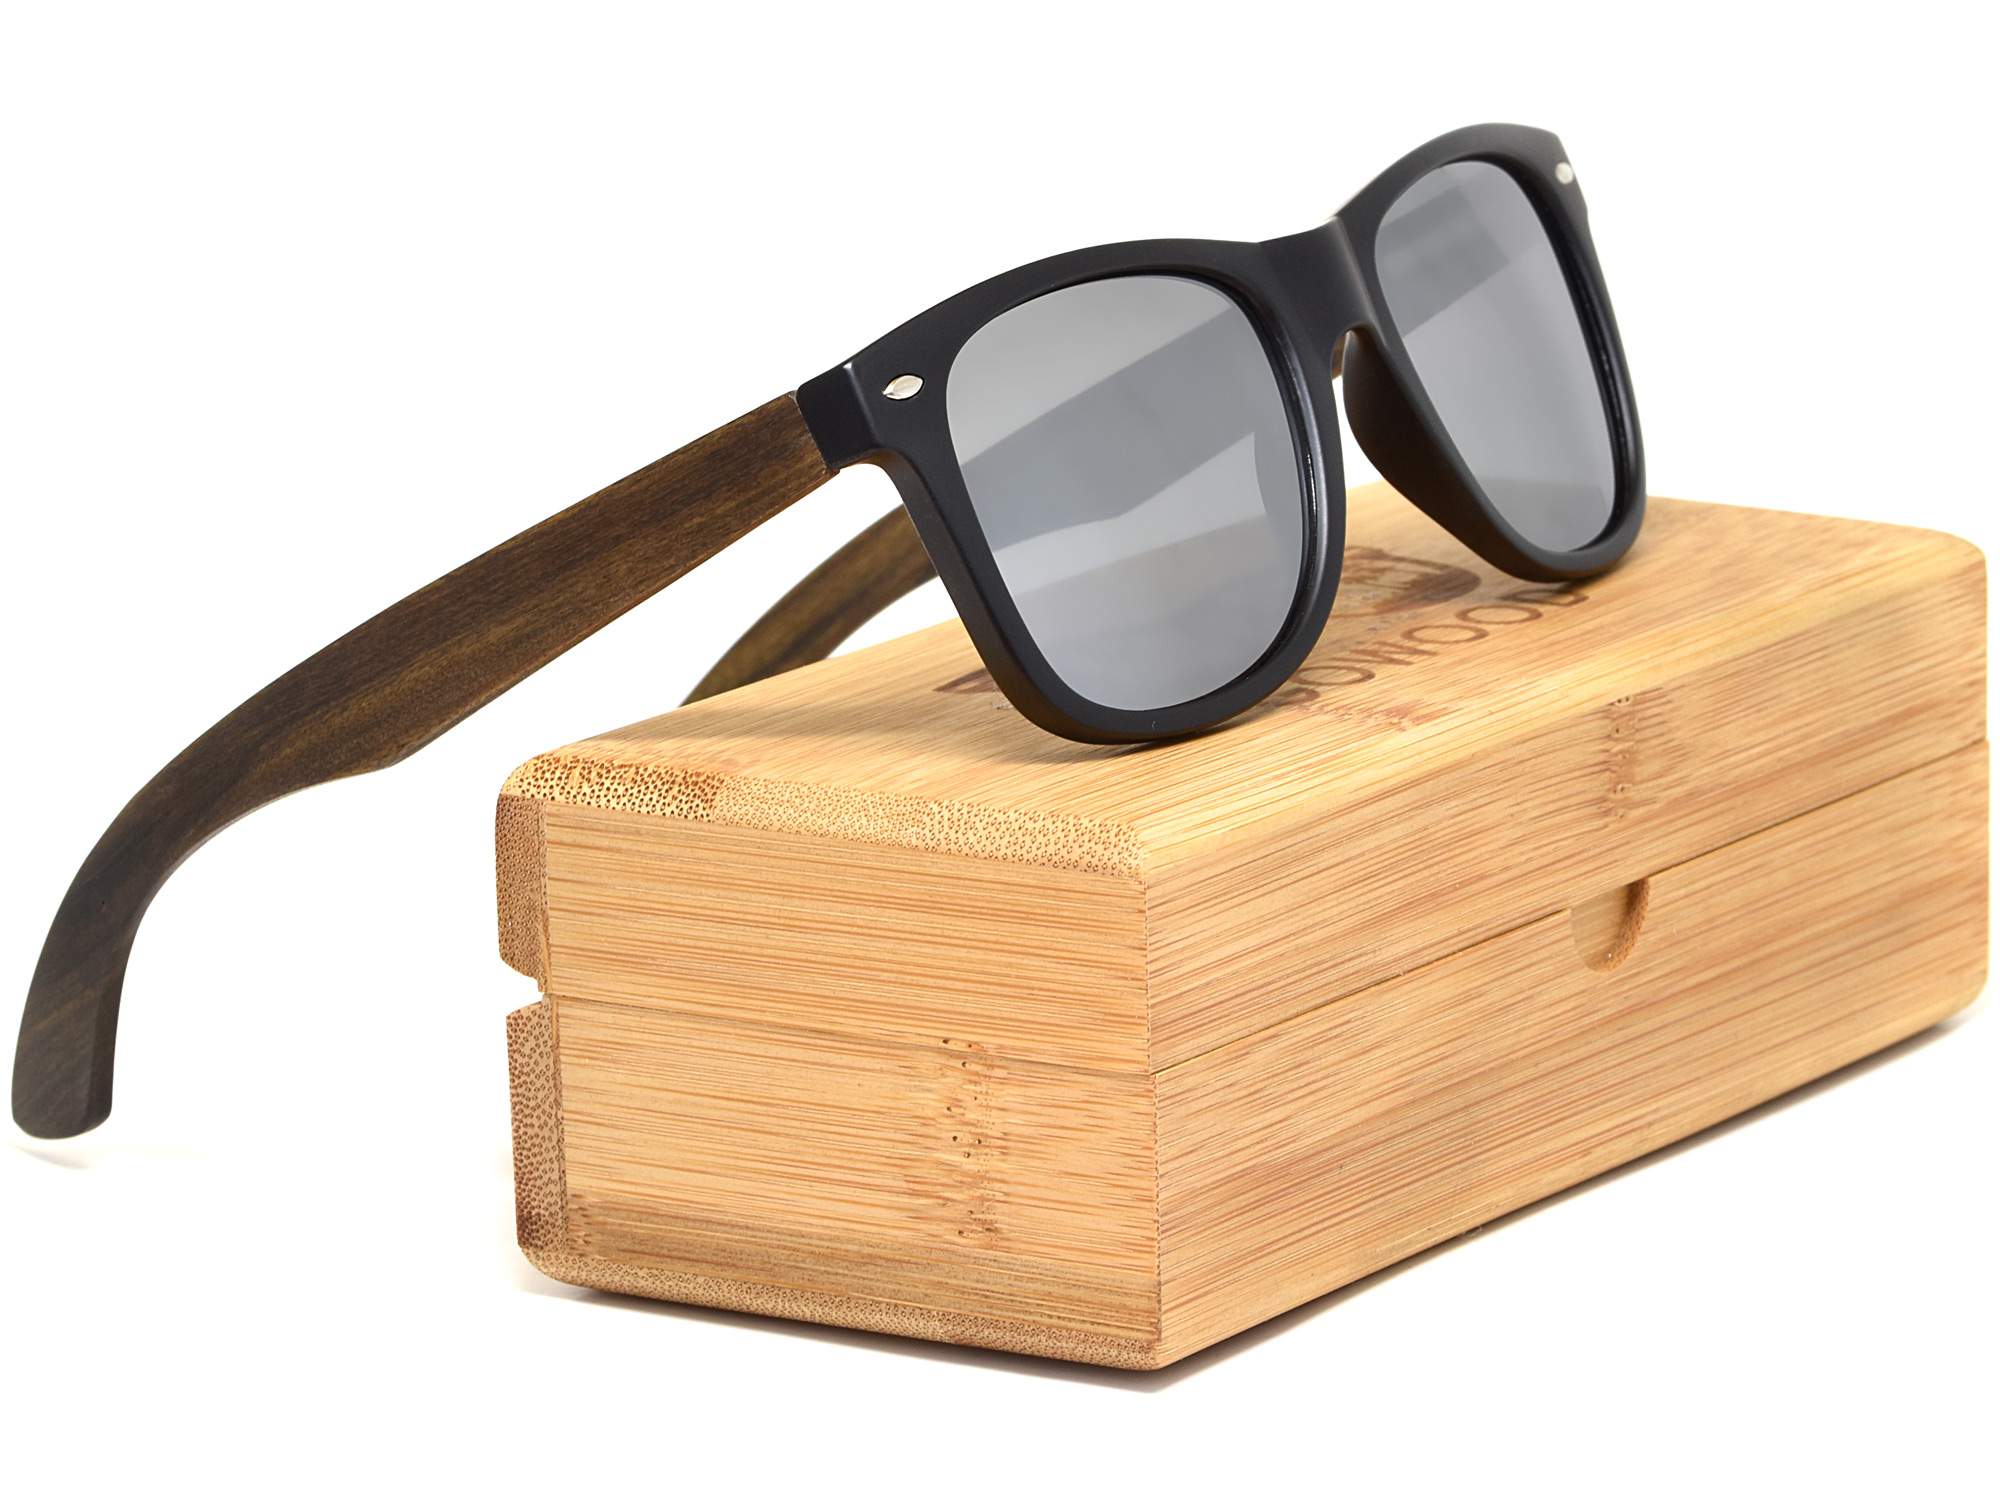 Ebony wood sunglasses with silver mirrored lenses set